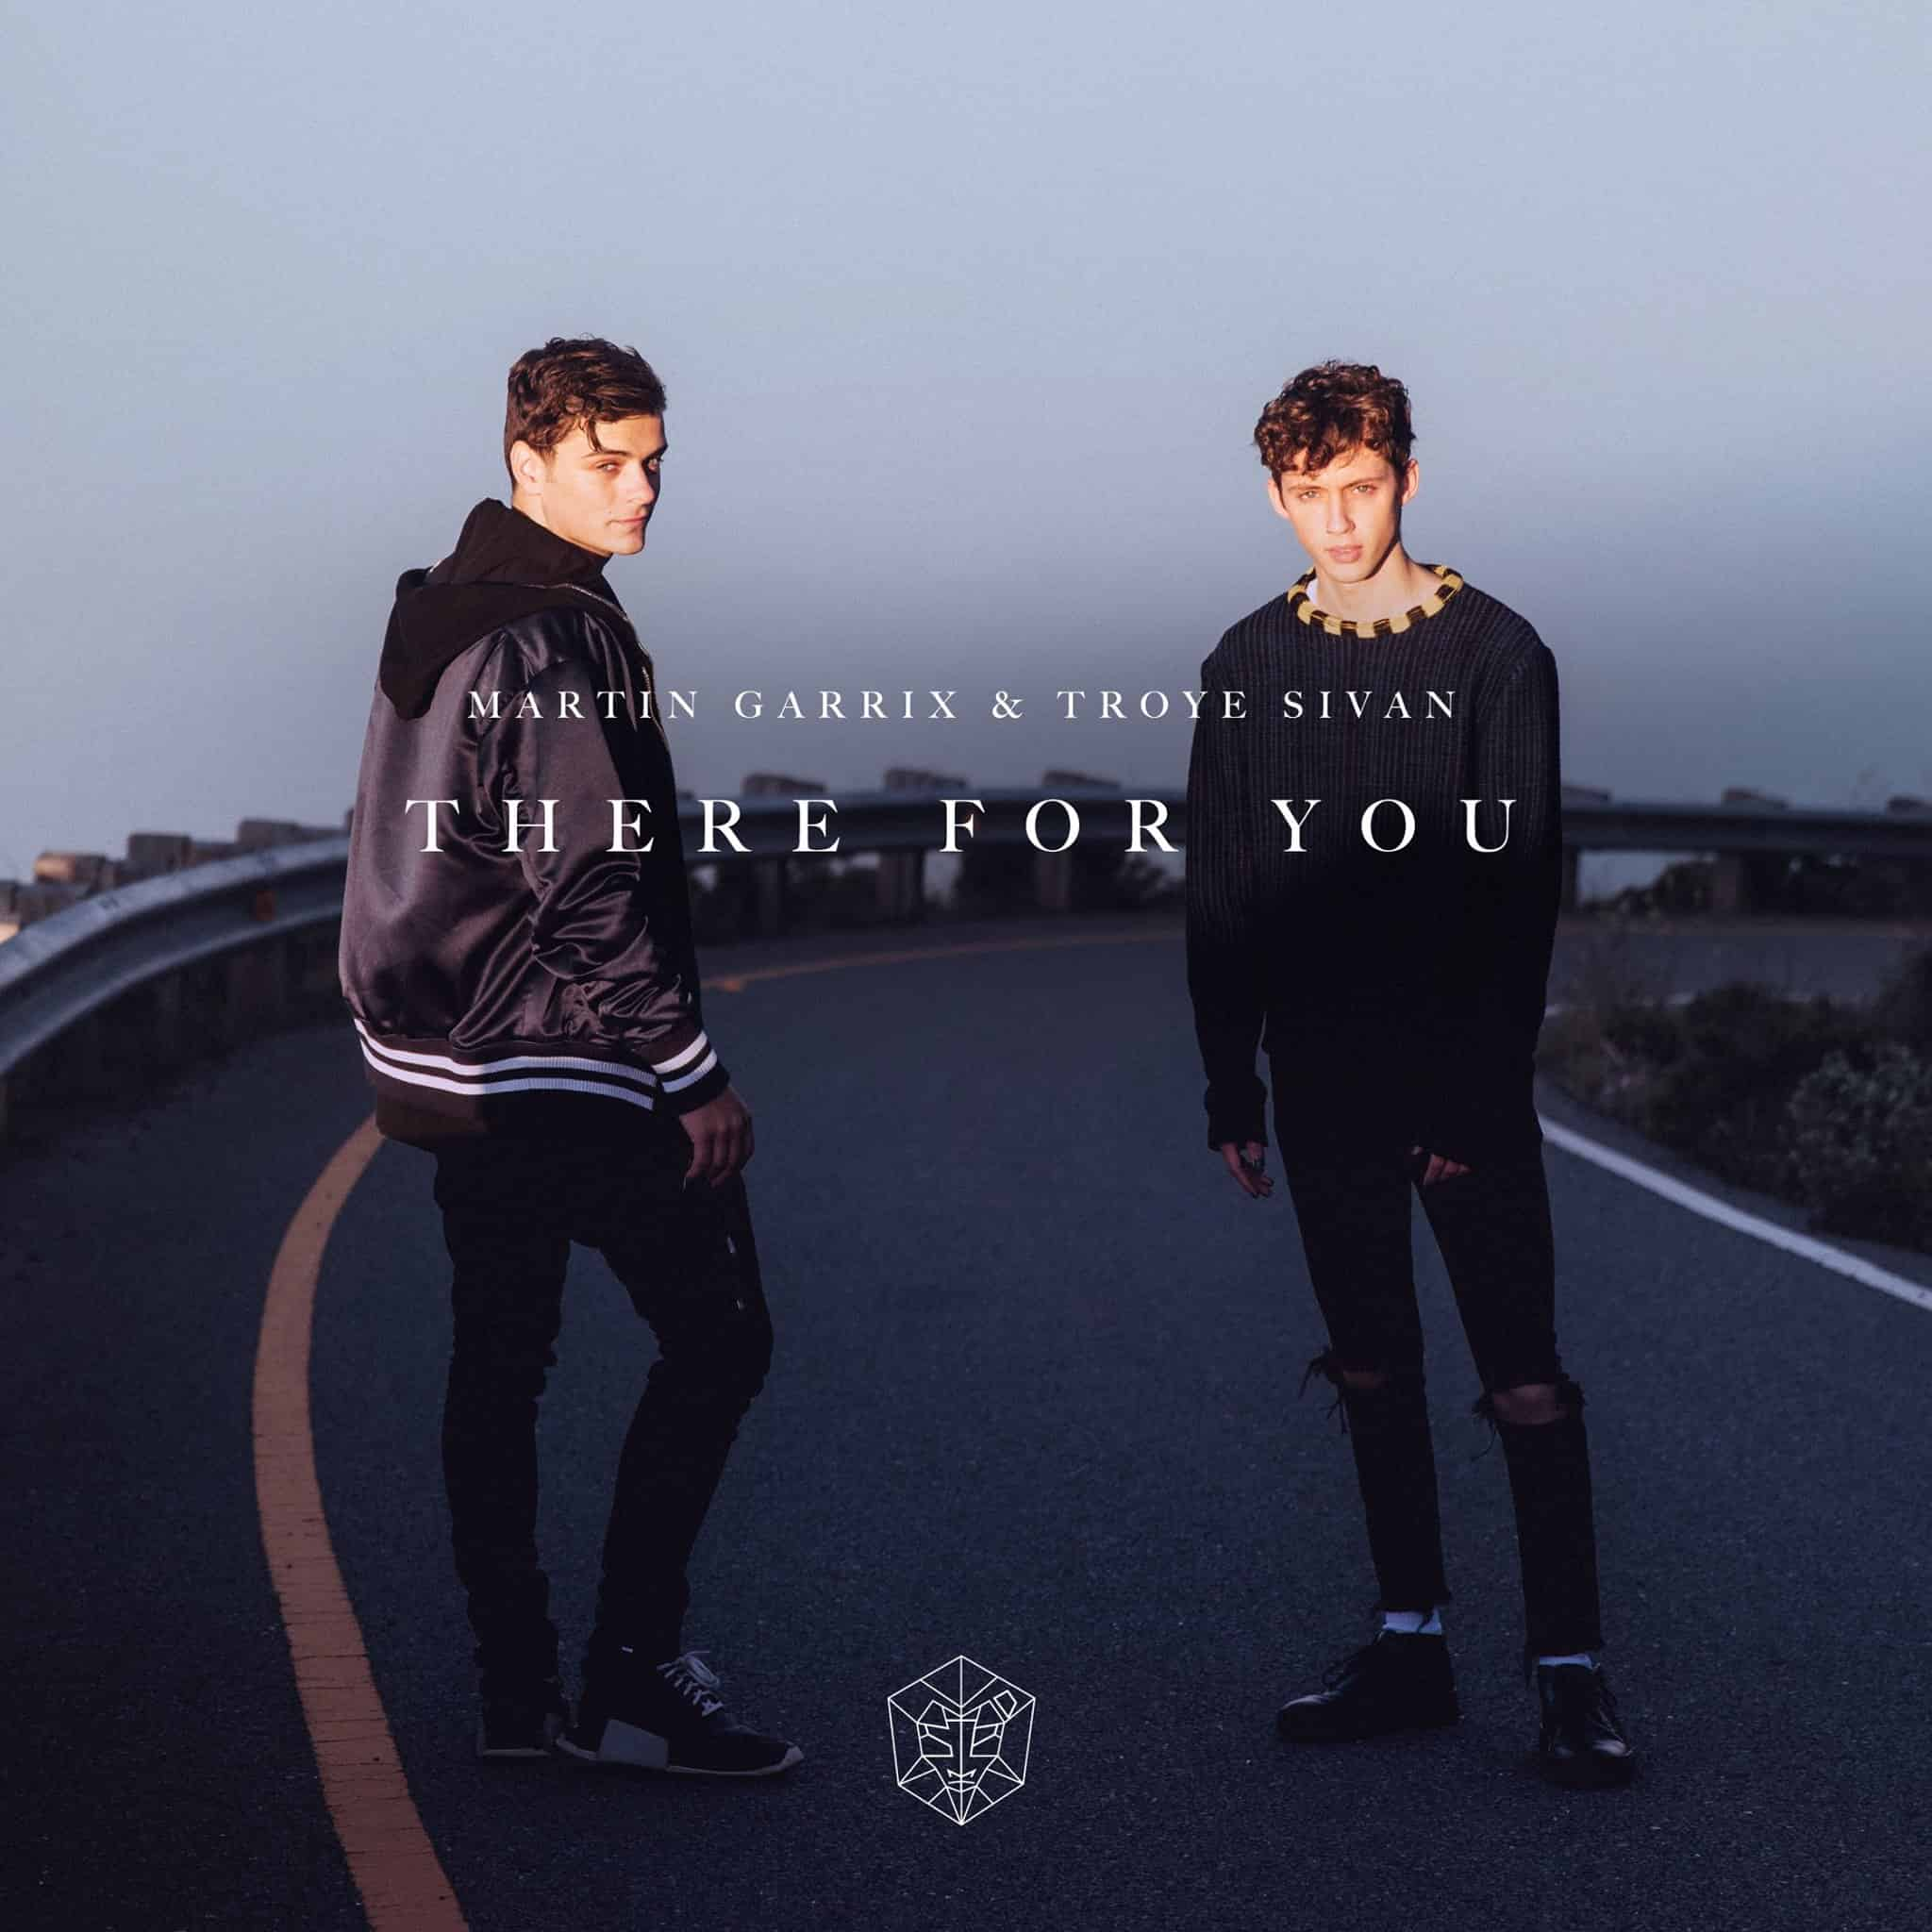 Martin Garrix & Troye Sivan – There For You [STMPD RCRDS]